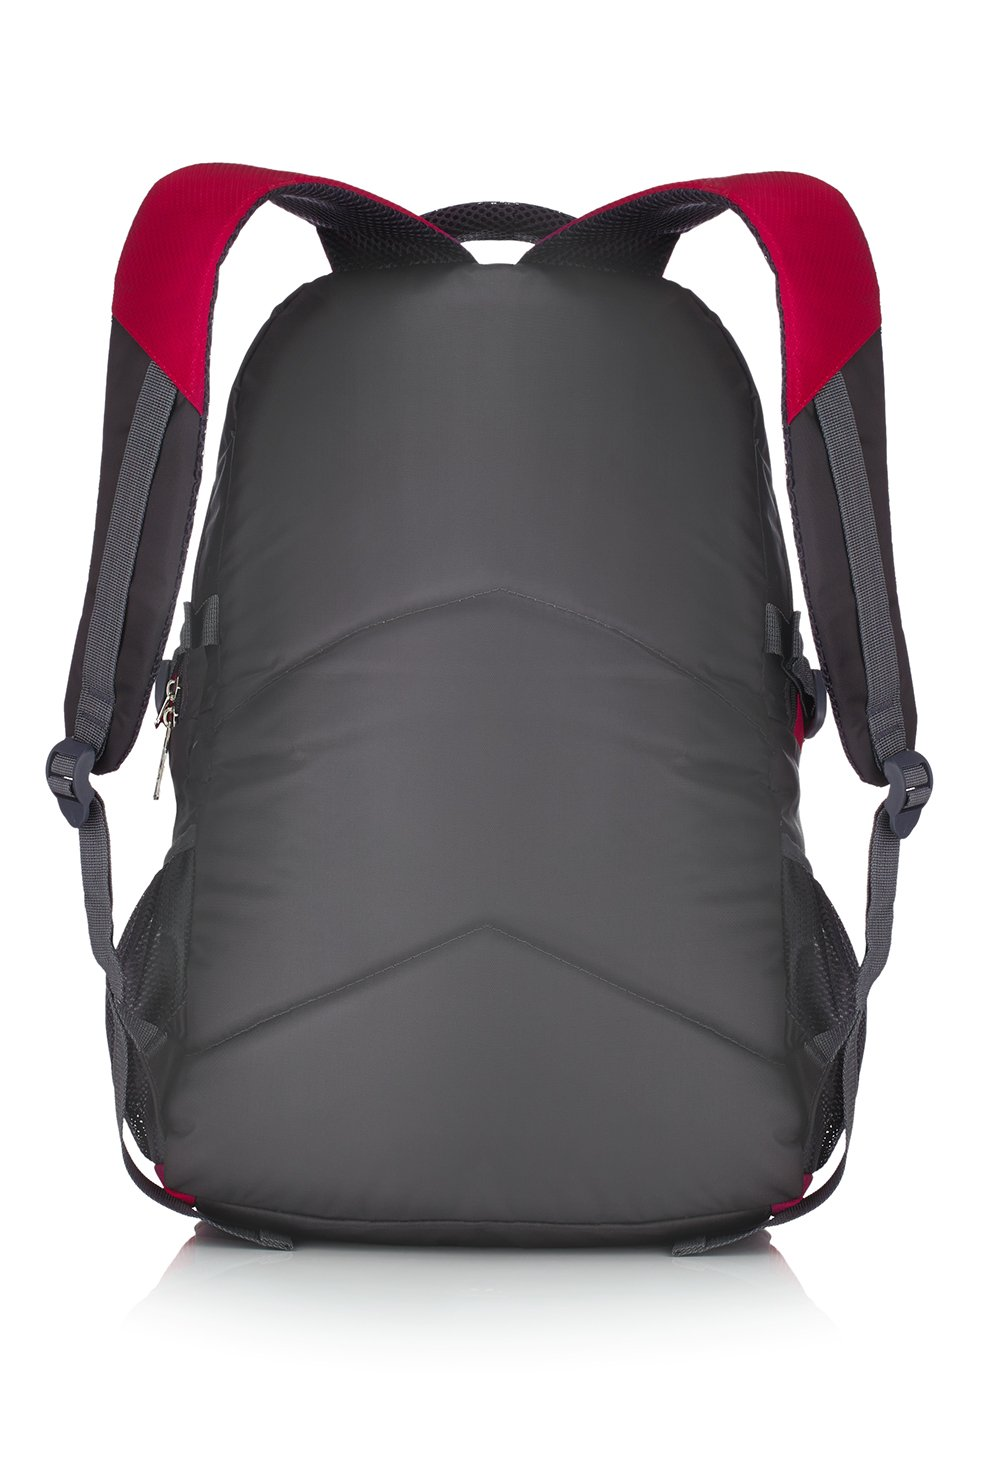 Camden Gear Backpack for School - Laptop - Hiking Rucksack for Men   Women 6870c652945ab